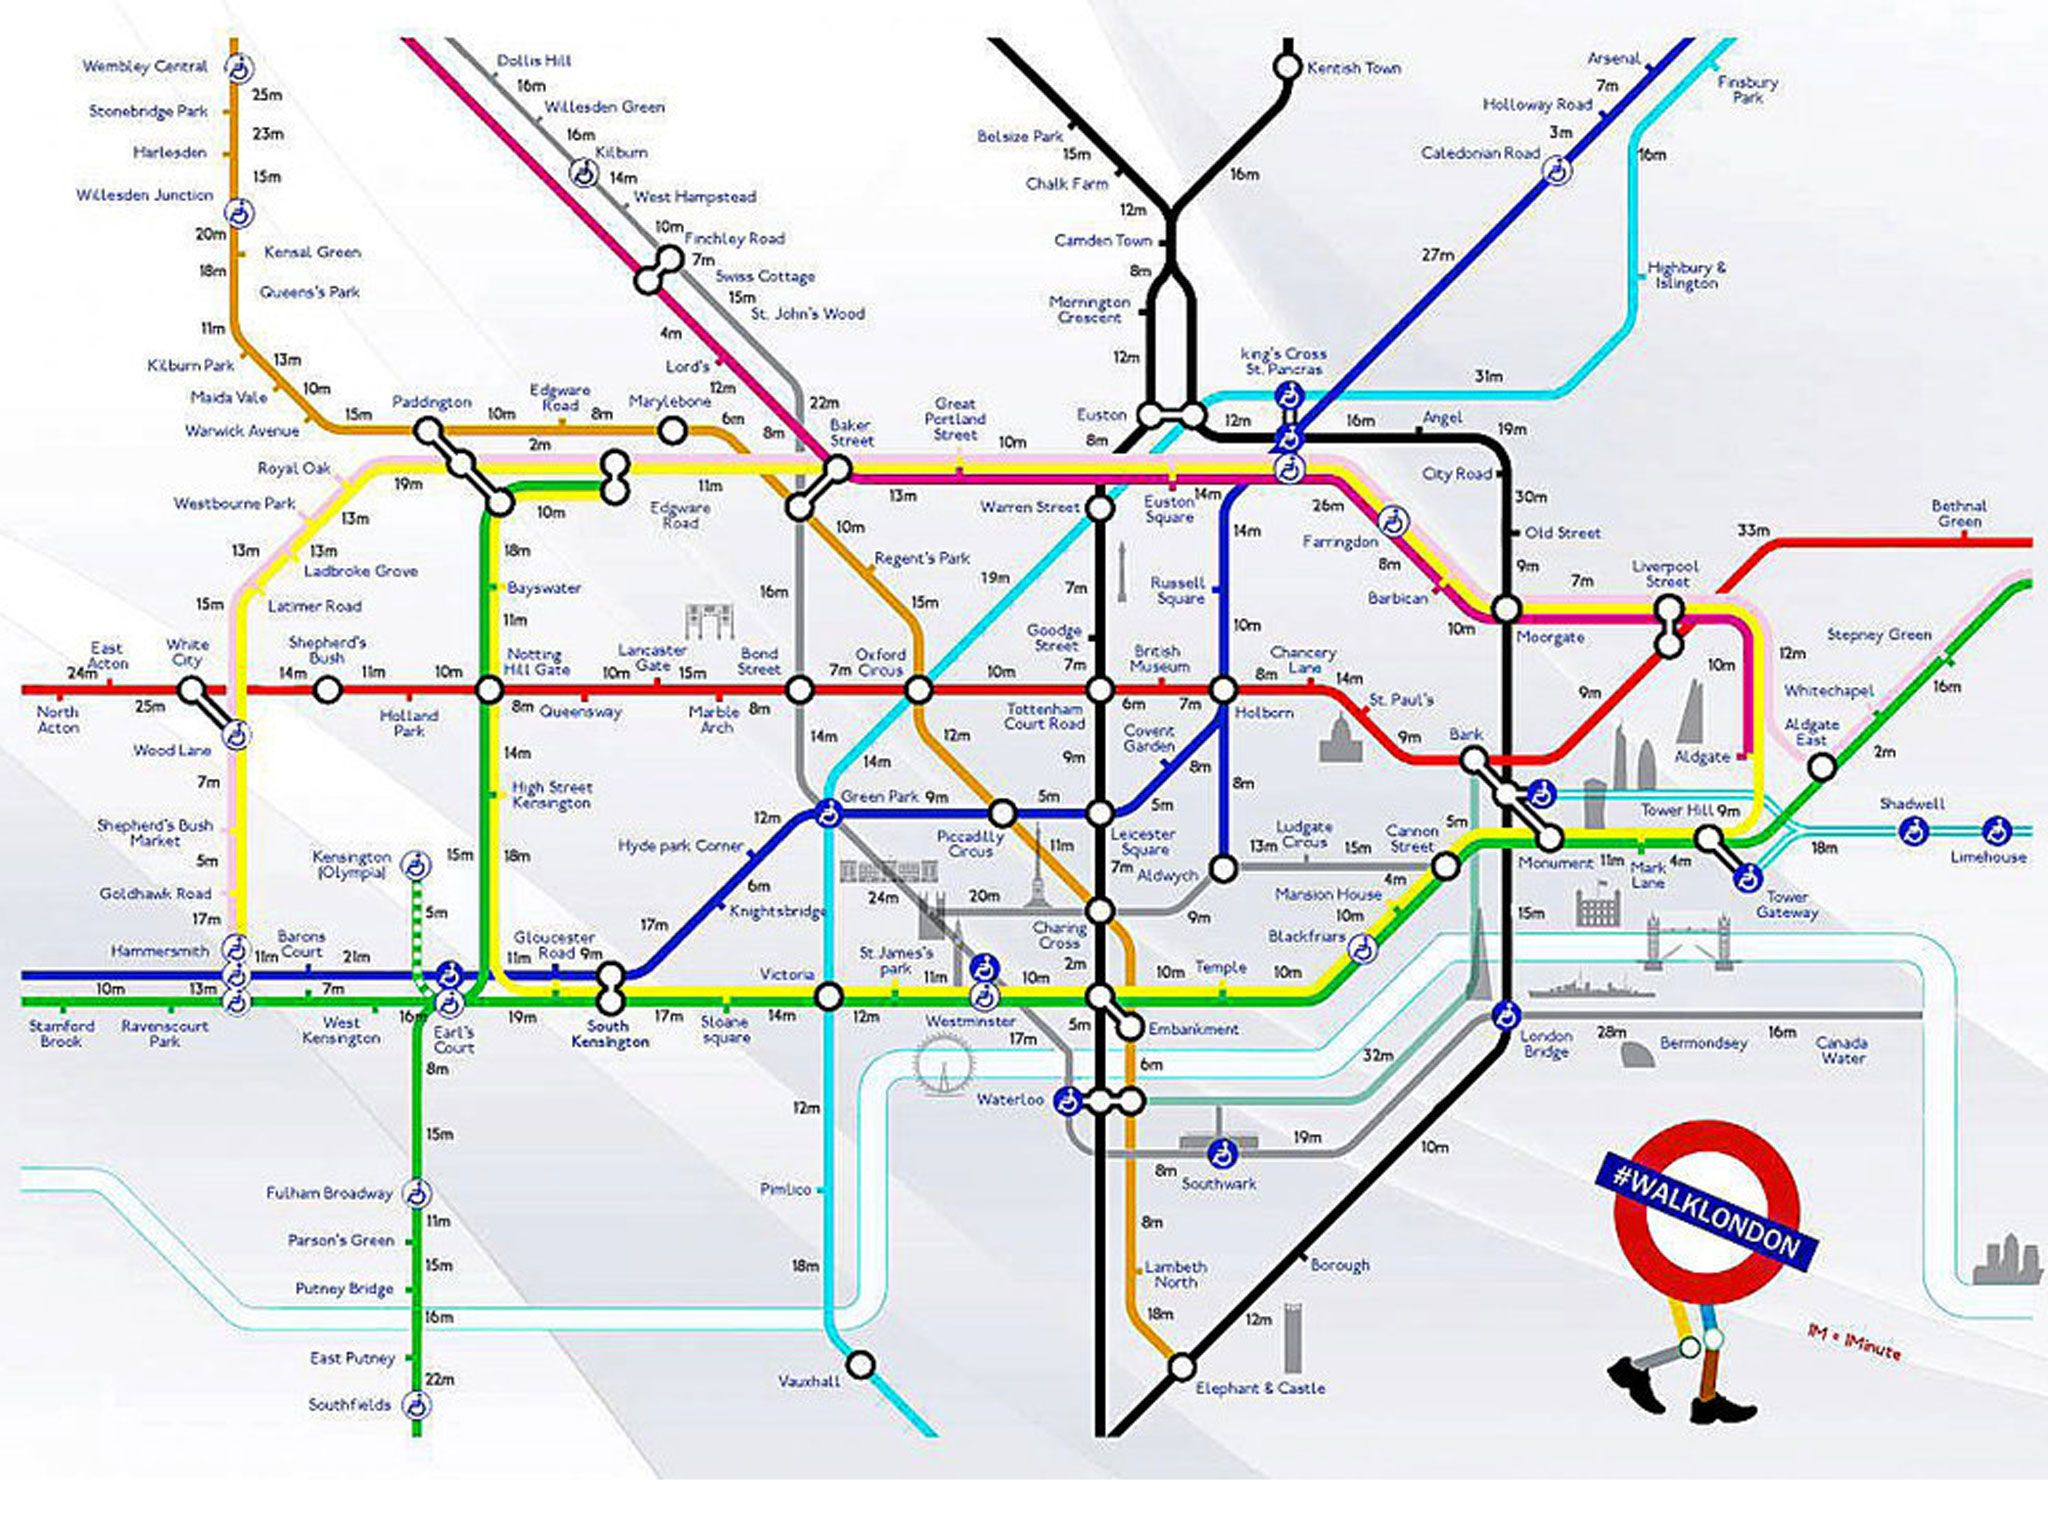 c104b14e244 Tube walking map  Avoid Underground chaos with this useful guide to  overground routes between stations